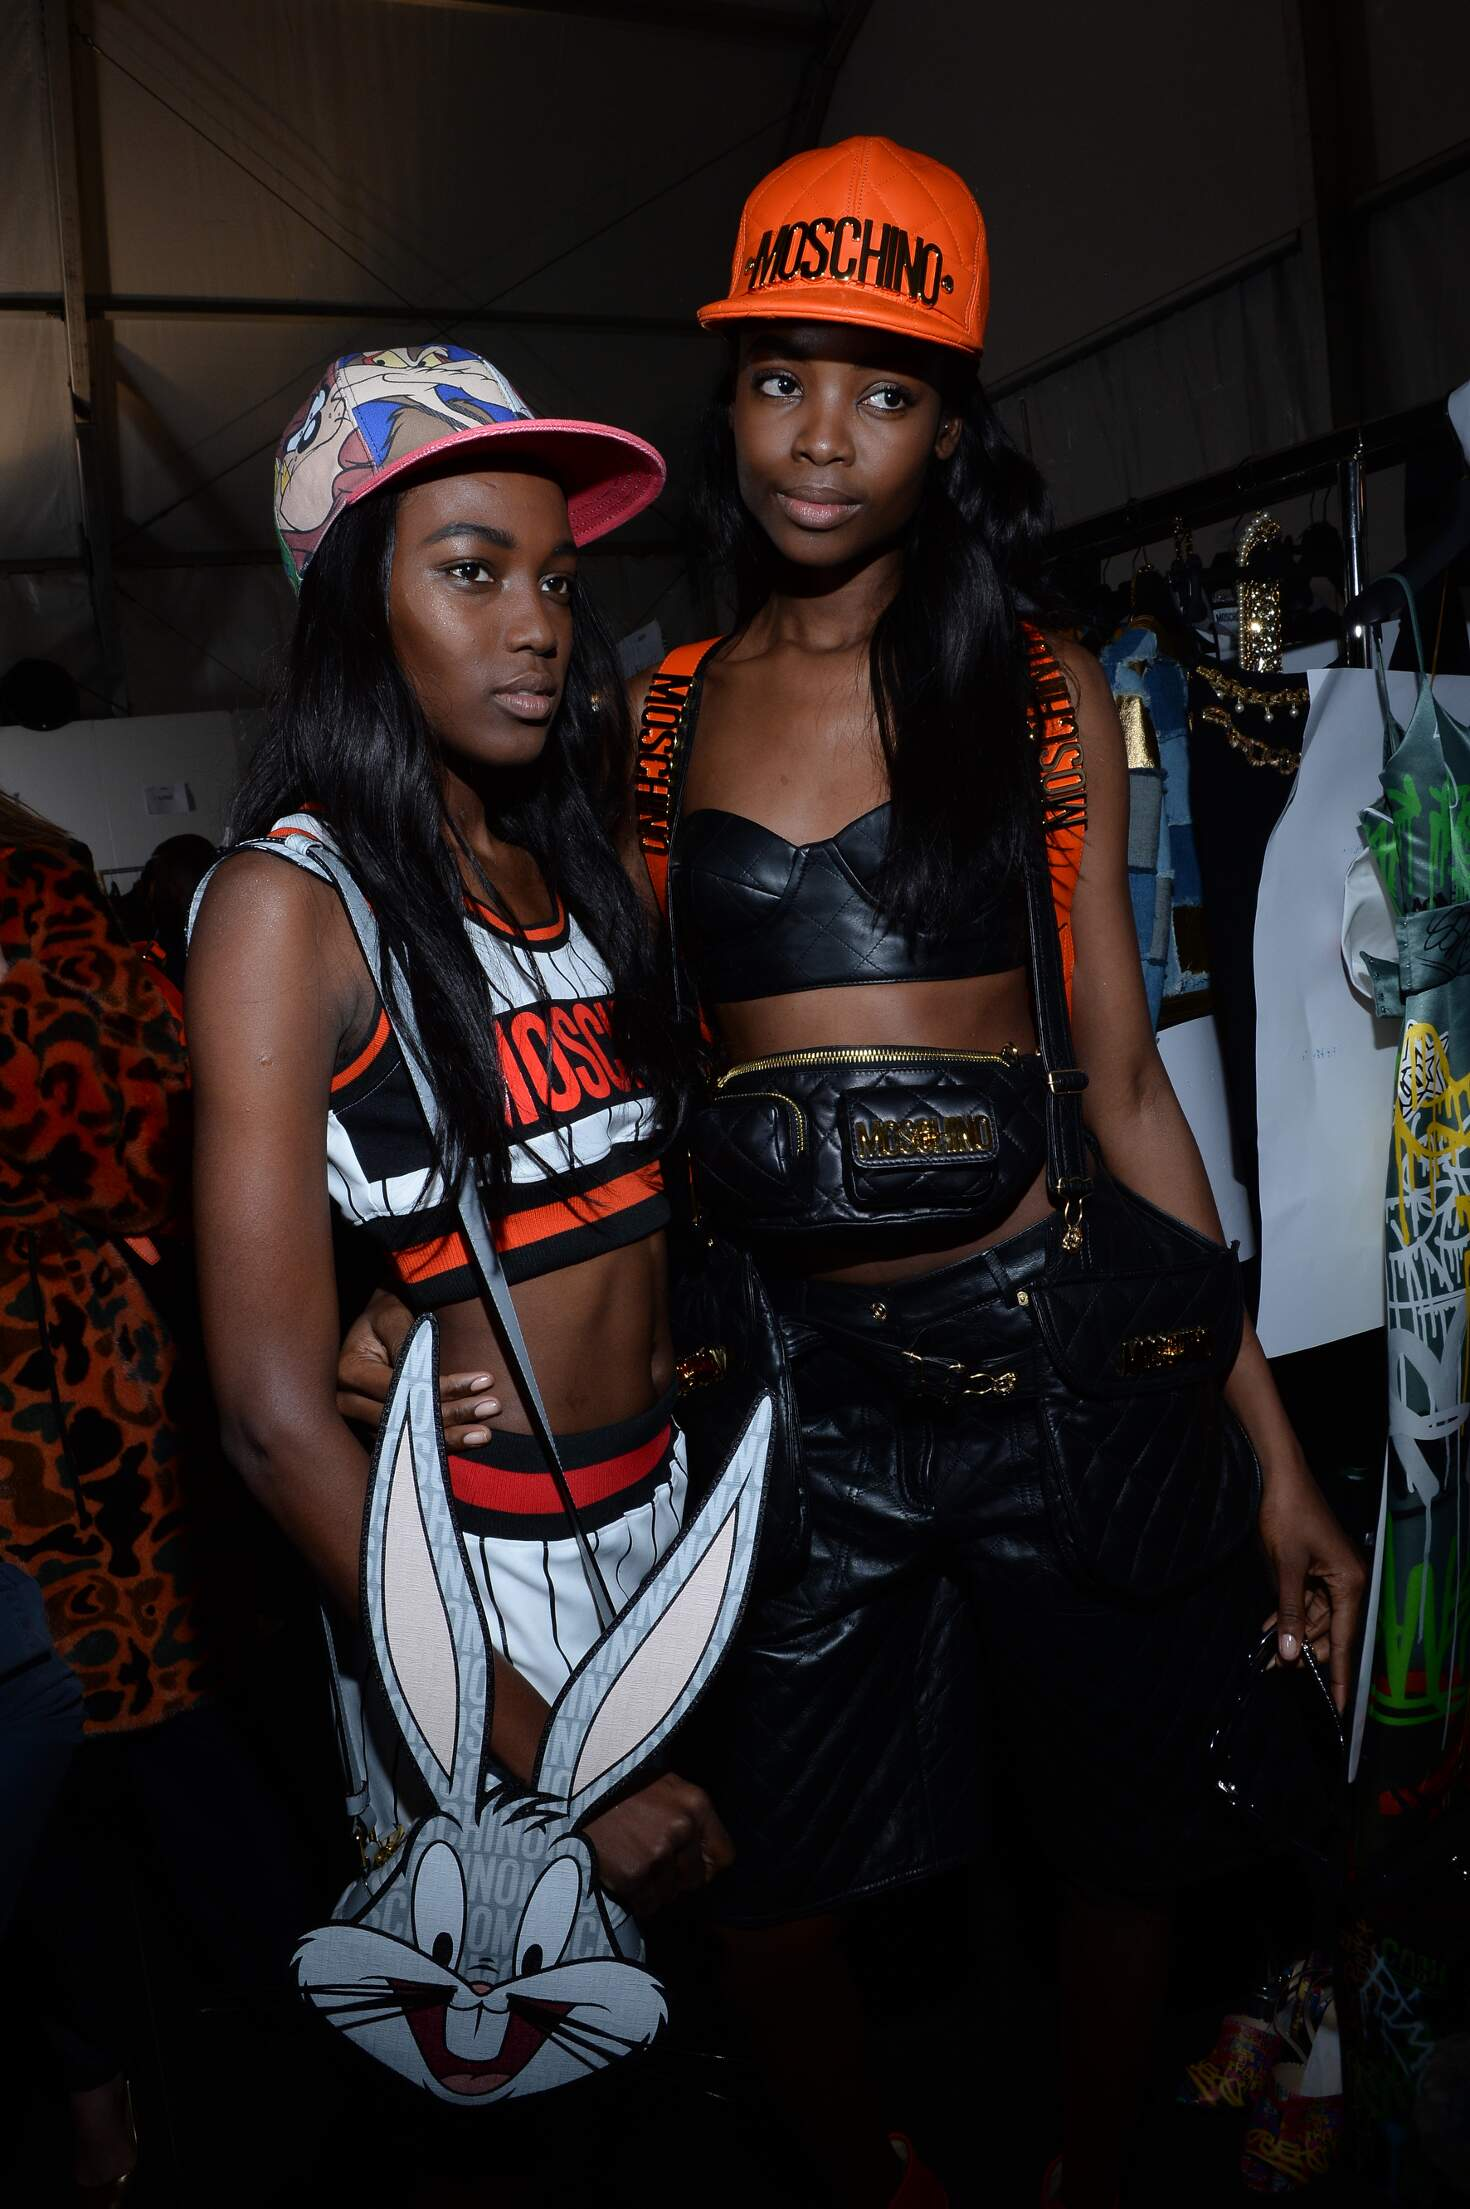 Backstage Moschino Fashion Show Models Milan